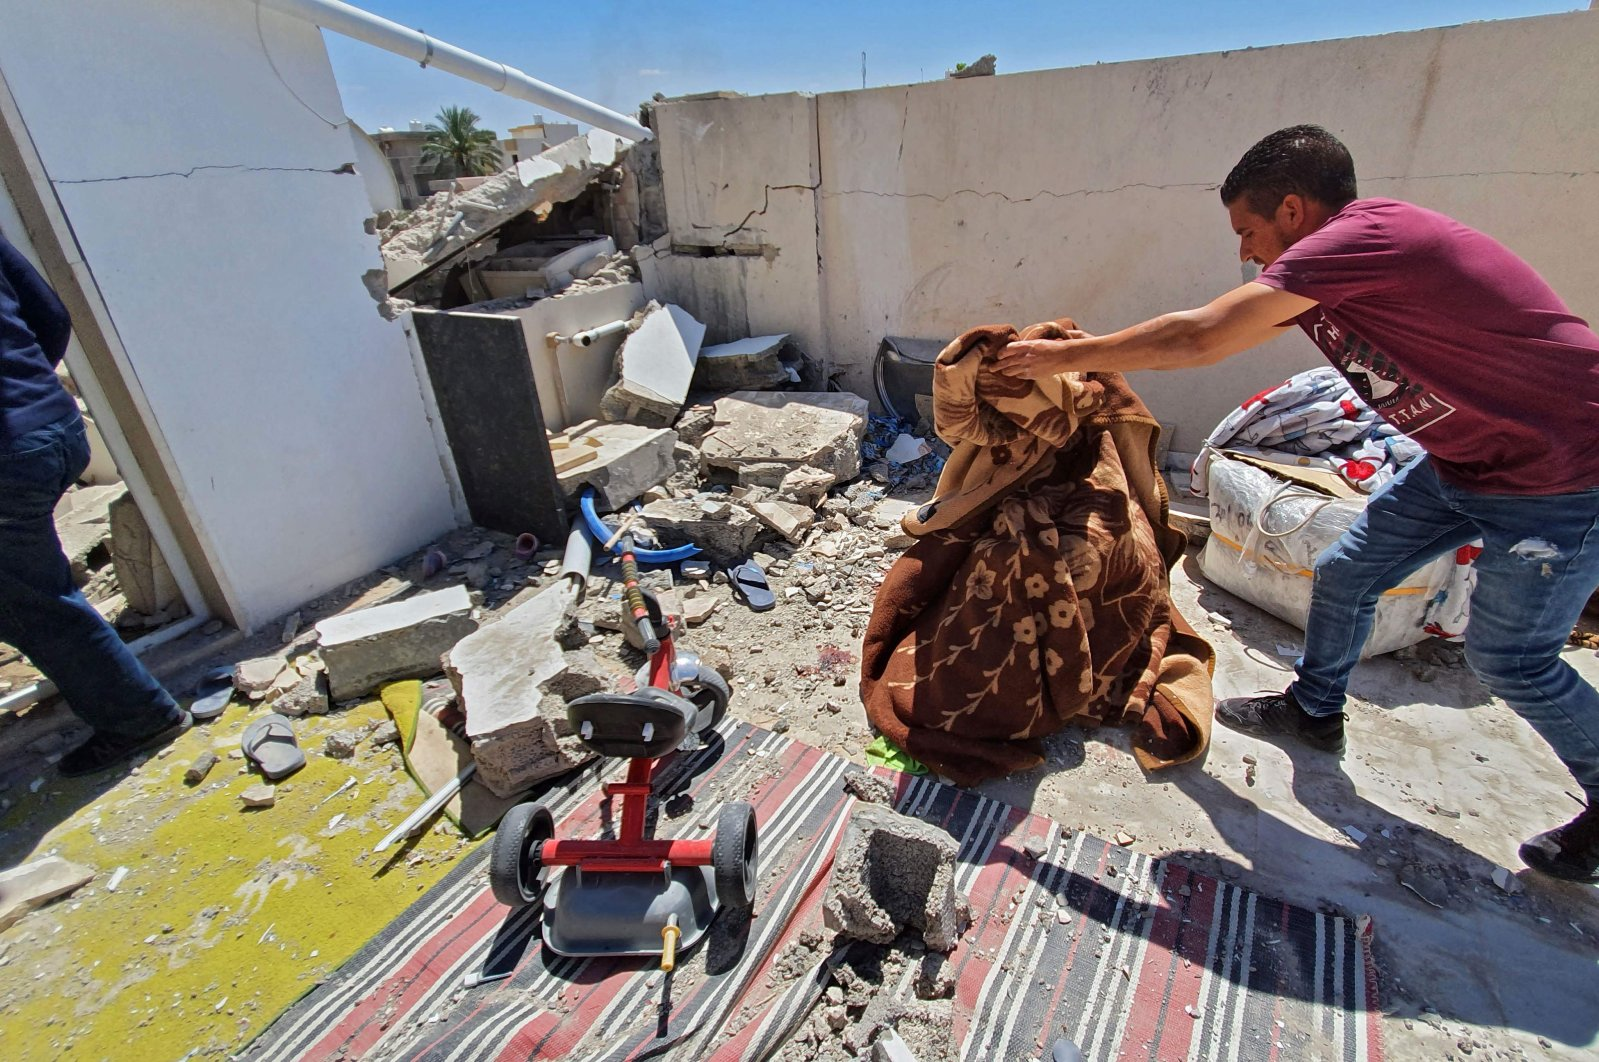 Residents salvage some belongings amidst the rubble of a building that was damaged when forces loyal to putschist Gen. Khalifa Haftar shelled the residential neighborhood of Znatah in the Libyan capital Tripoli,  May 1, 2020. (AFP)